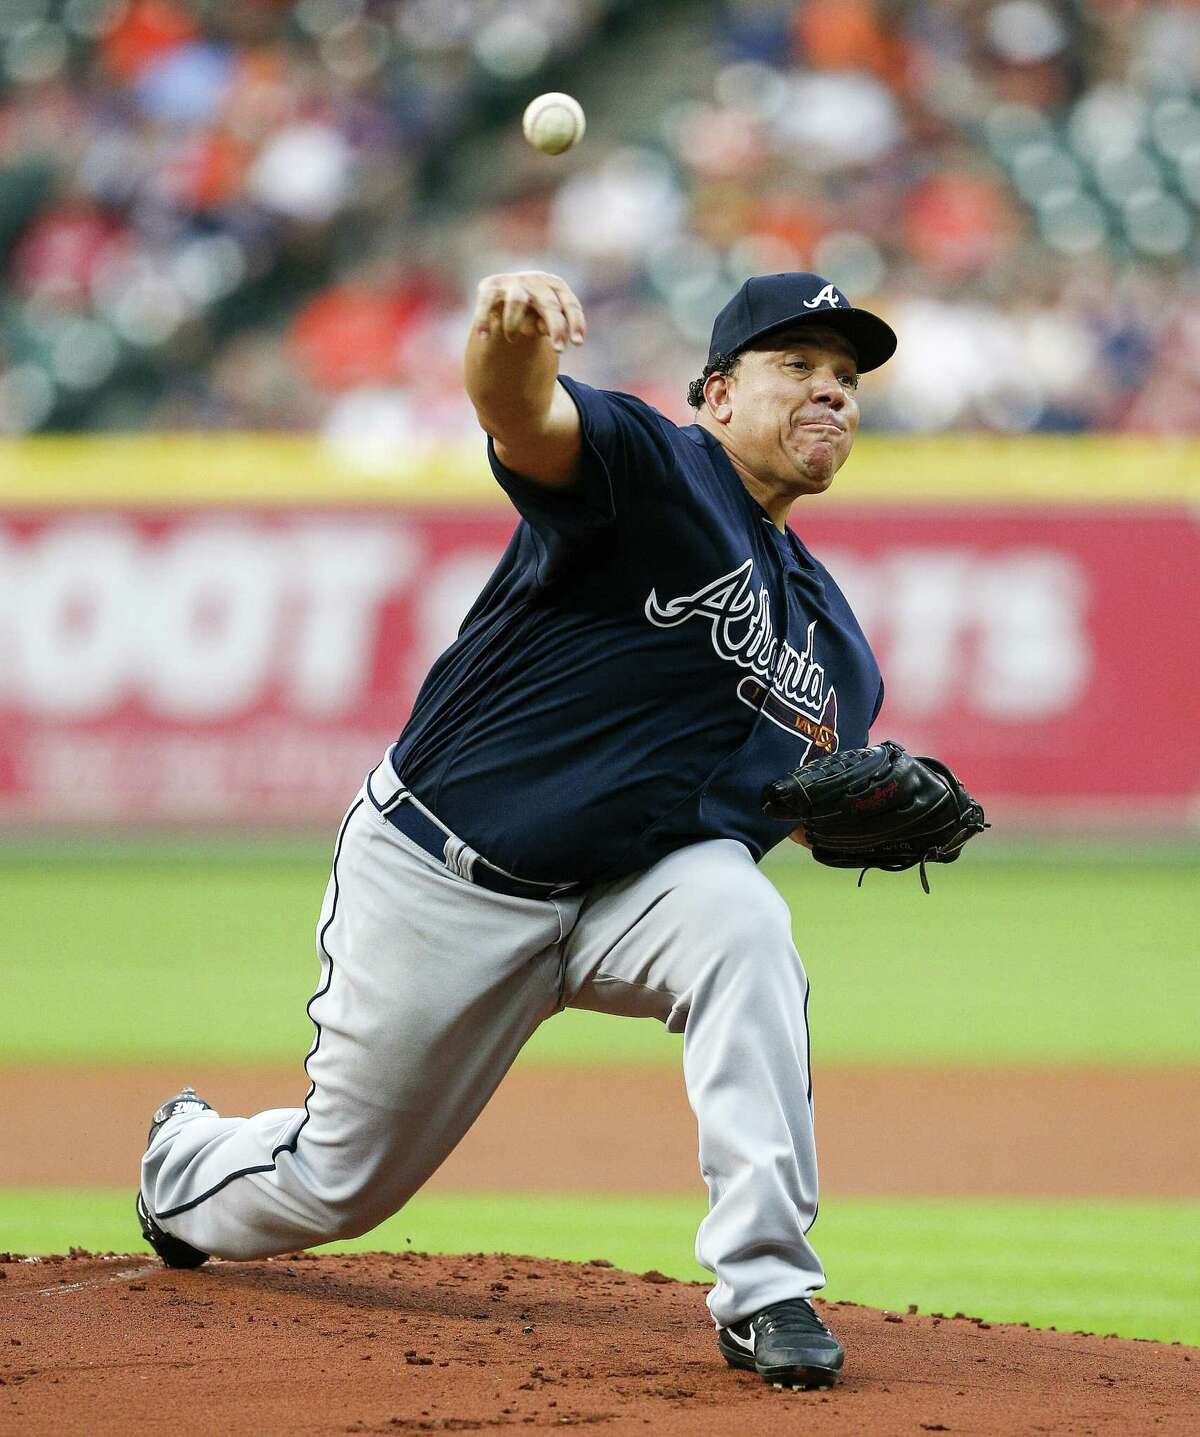 HOUSTON, TX - MAY 09: Starting pitcher Bartolo Colon #40 of the Atlanta Braves pitches in the first inning against the Houston Astros at Minute Maid Park on May 9, 2017 in Houston, Texas.